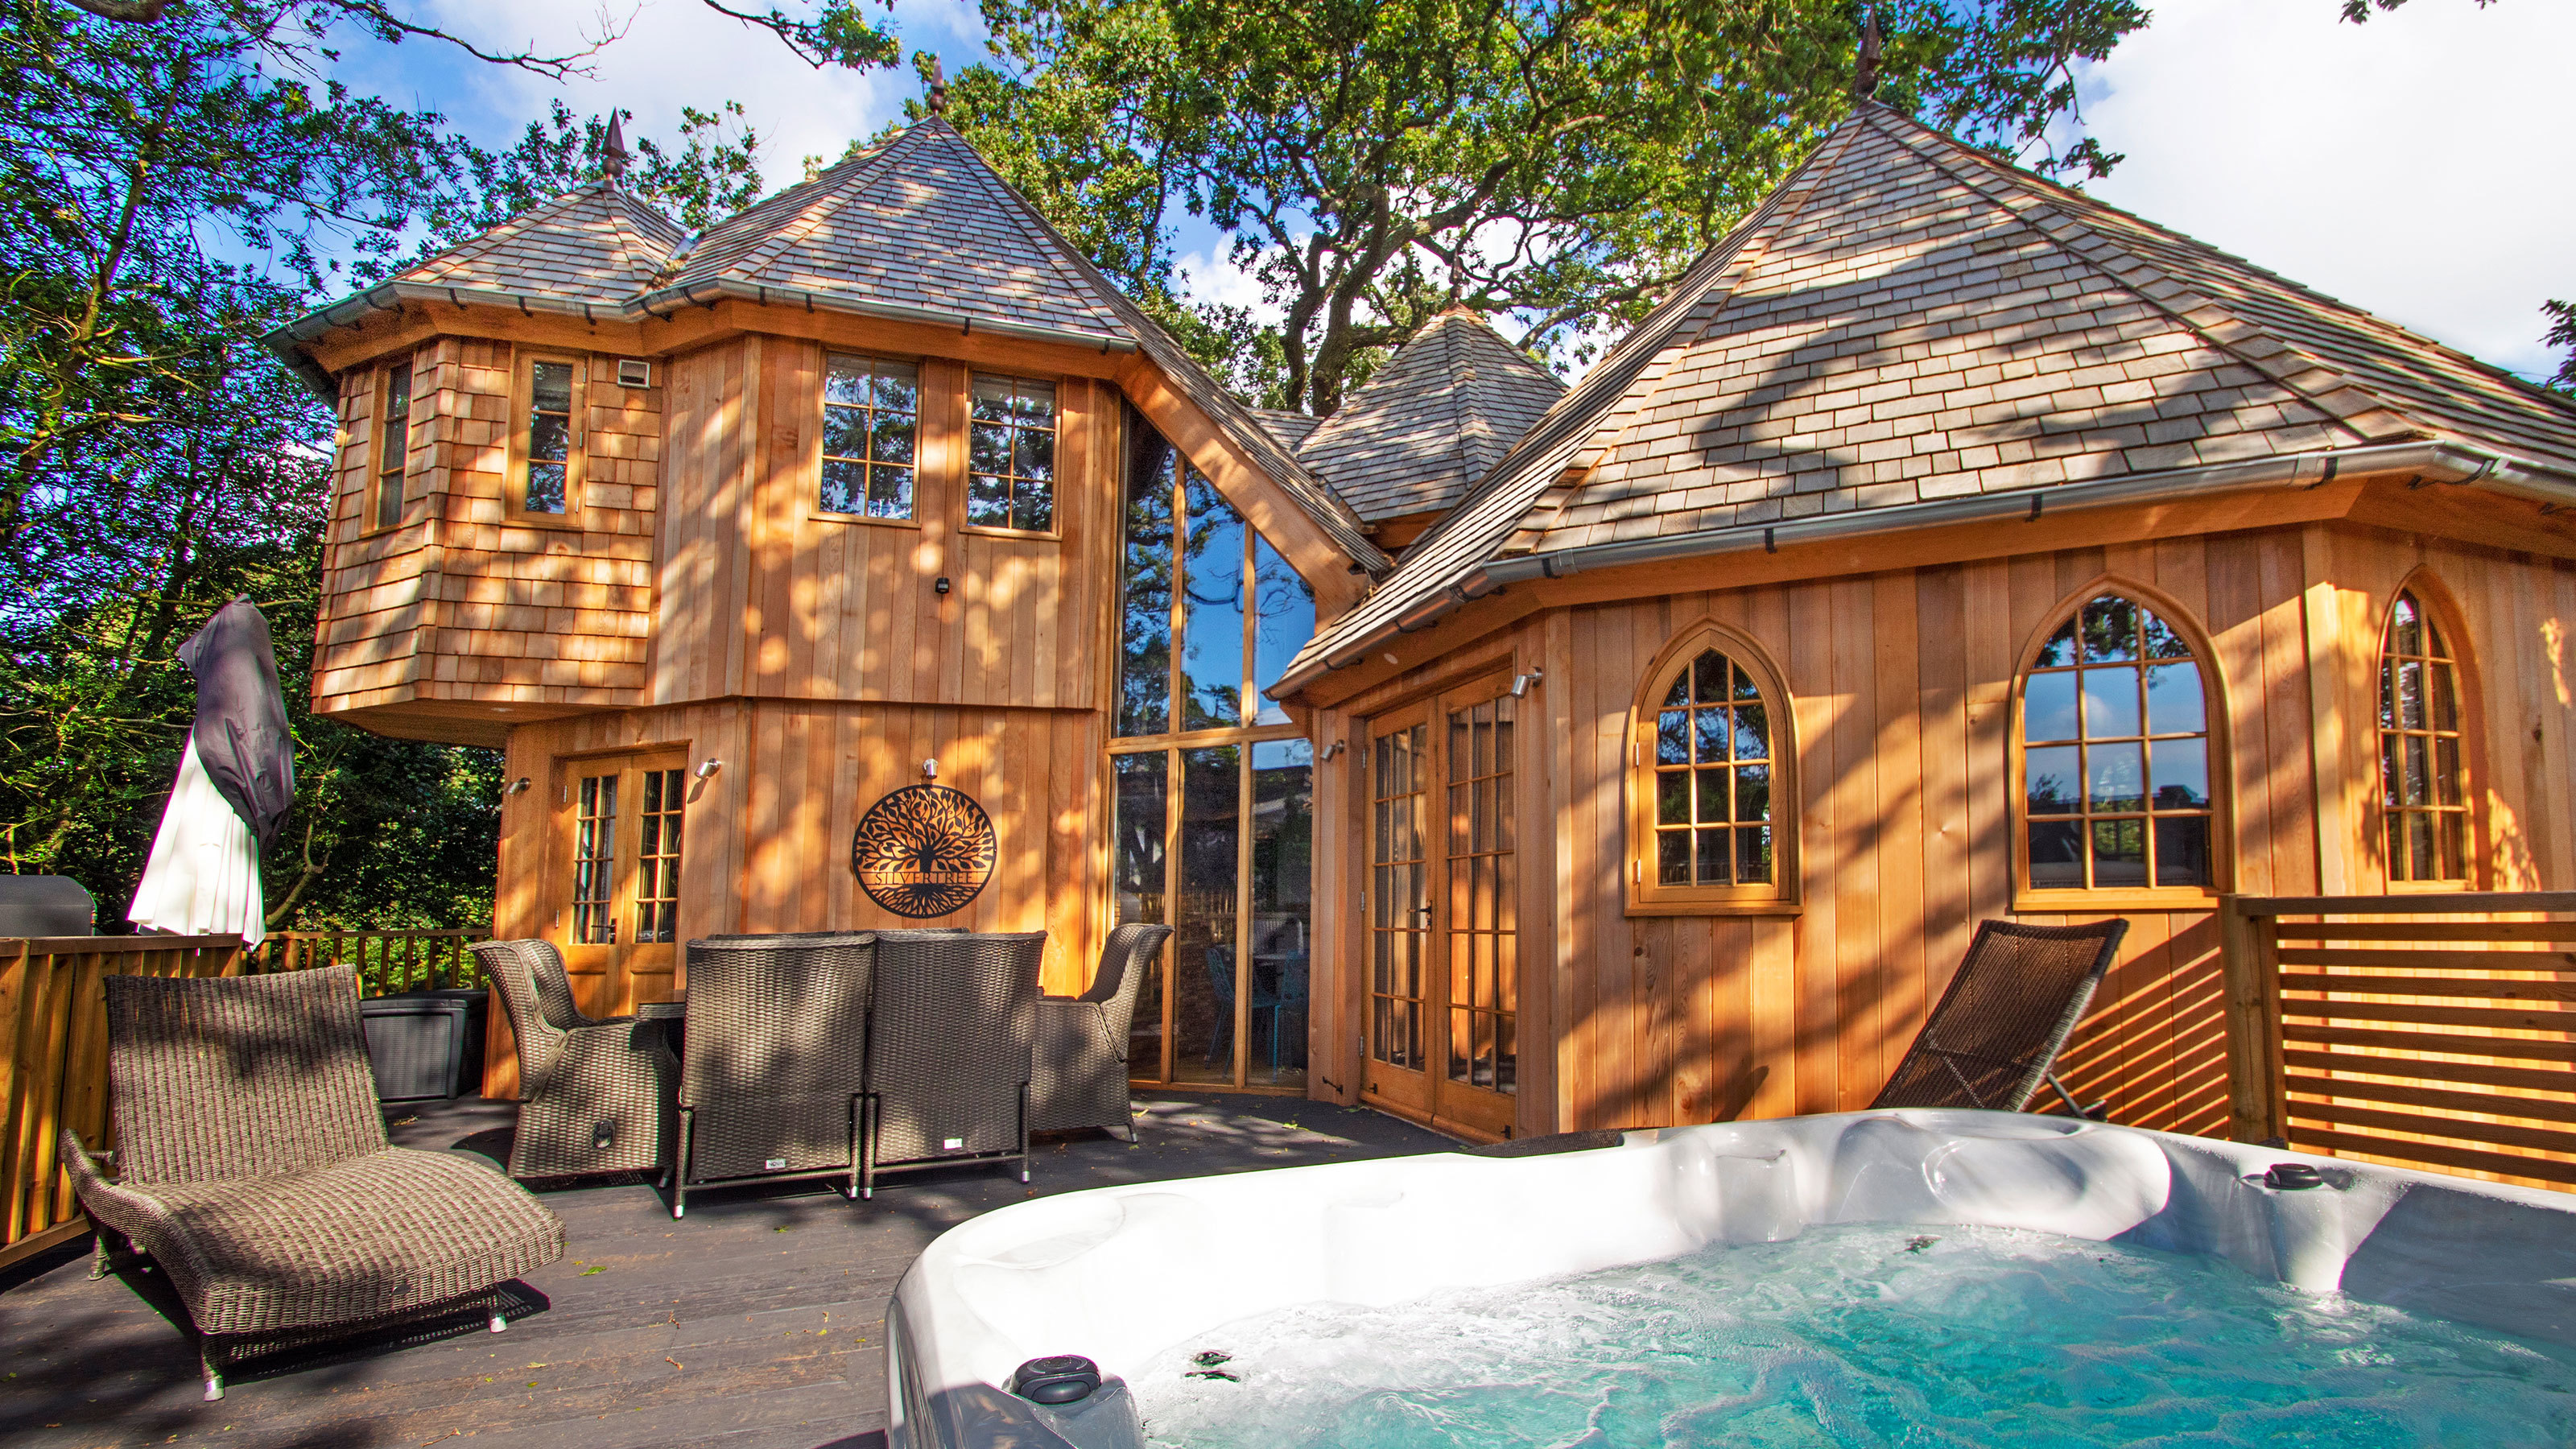 Silvertree House luxury treehouse with hot tub in the New Forest